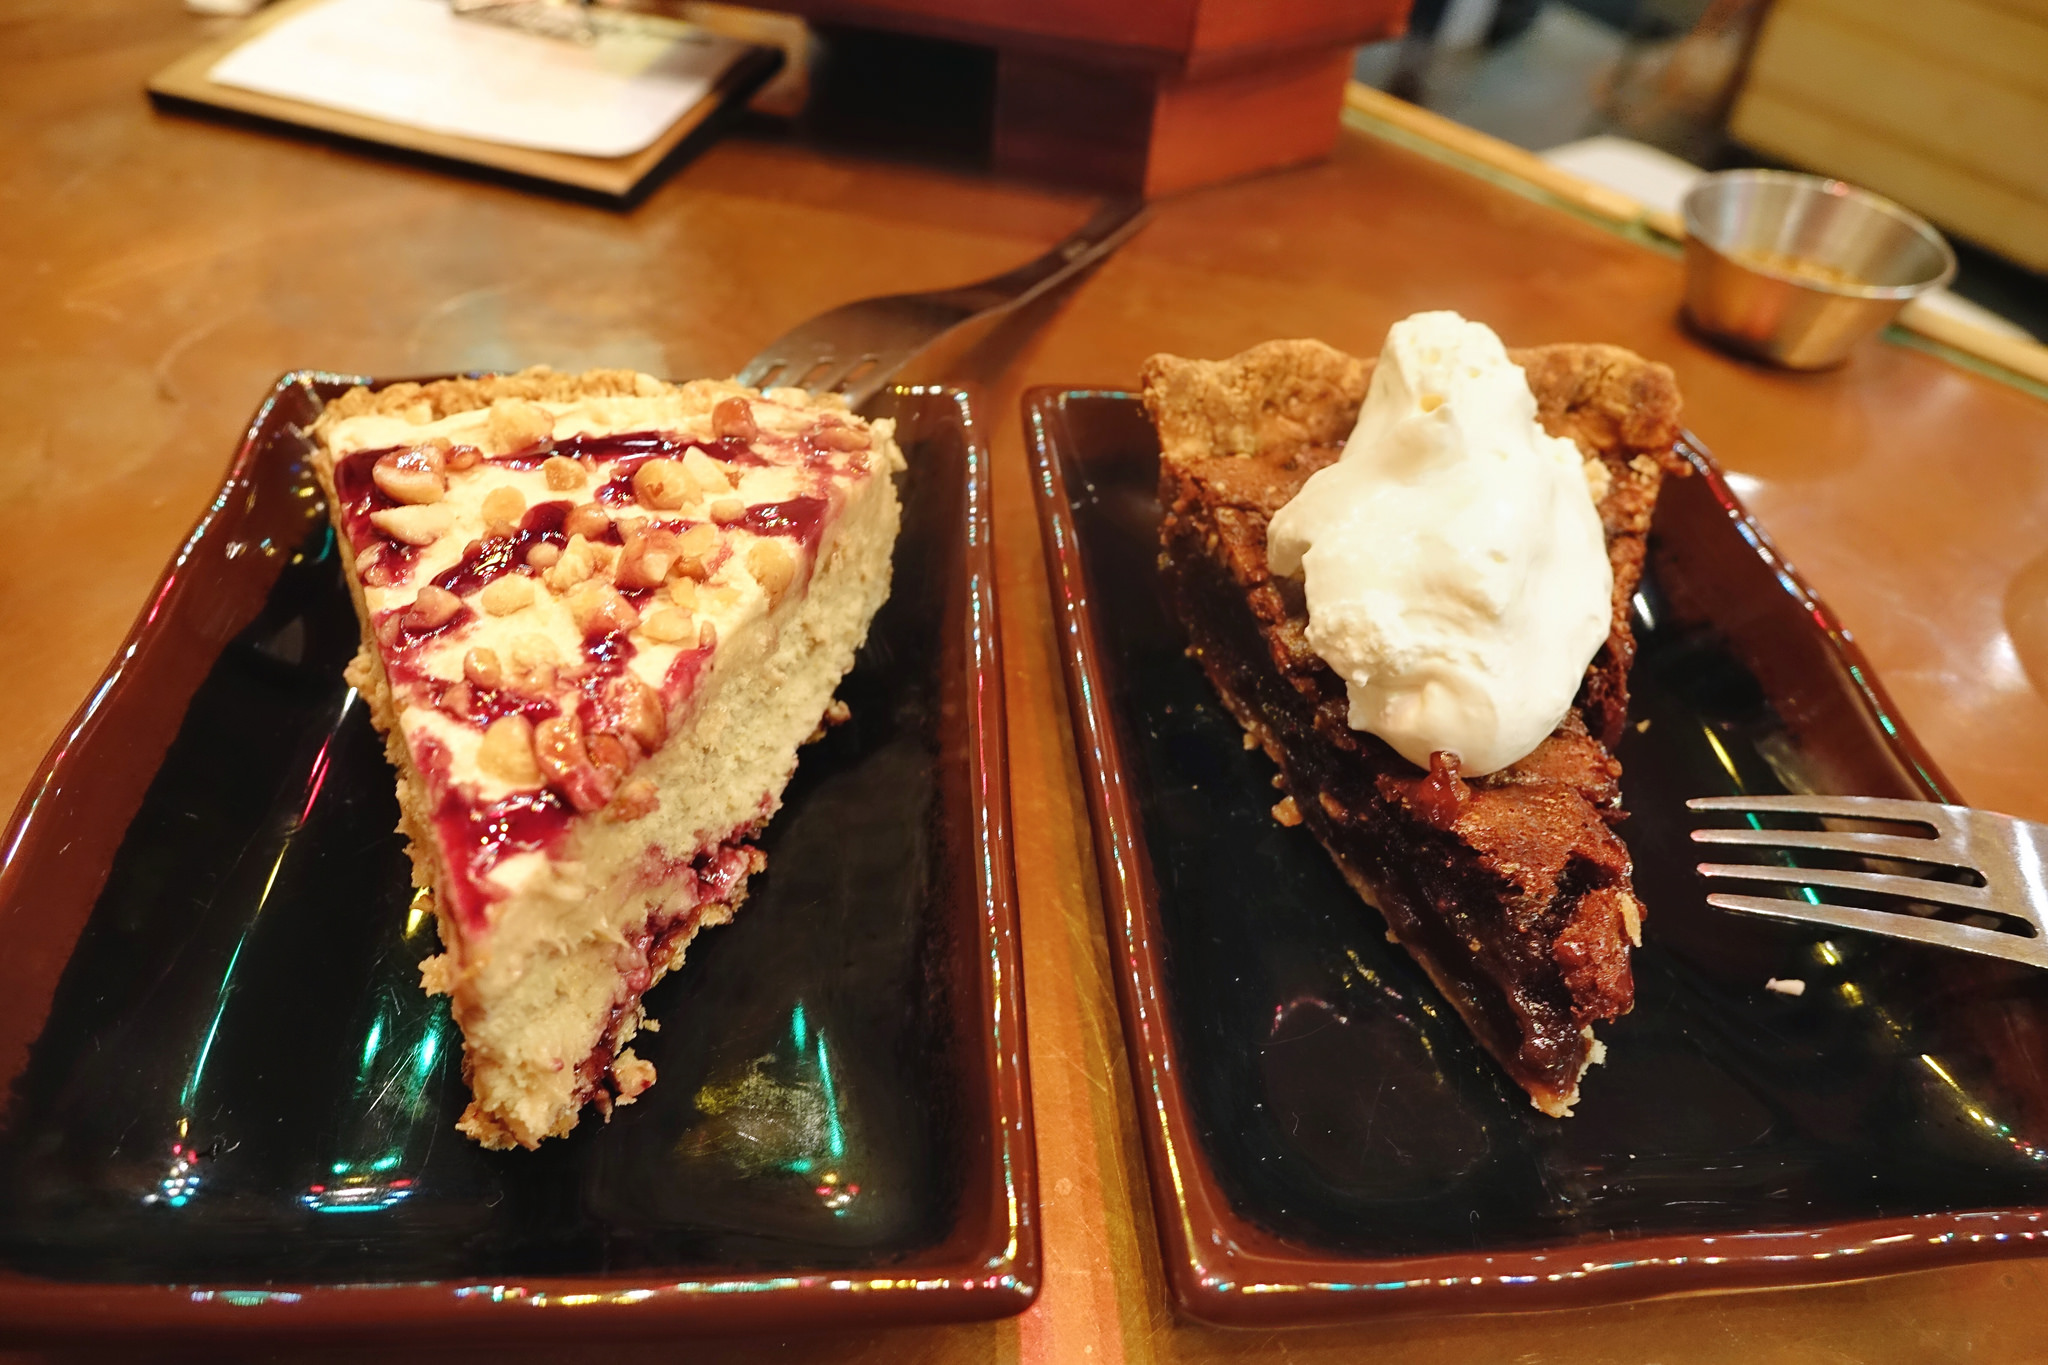 Two house-made pies from Noodle and Pie. (Photo: Paul Broussard)